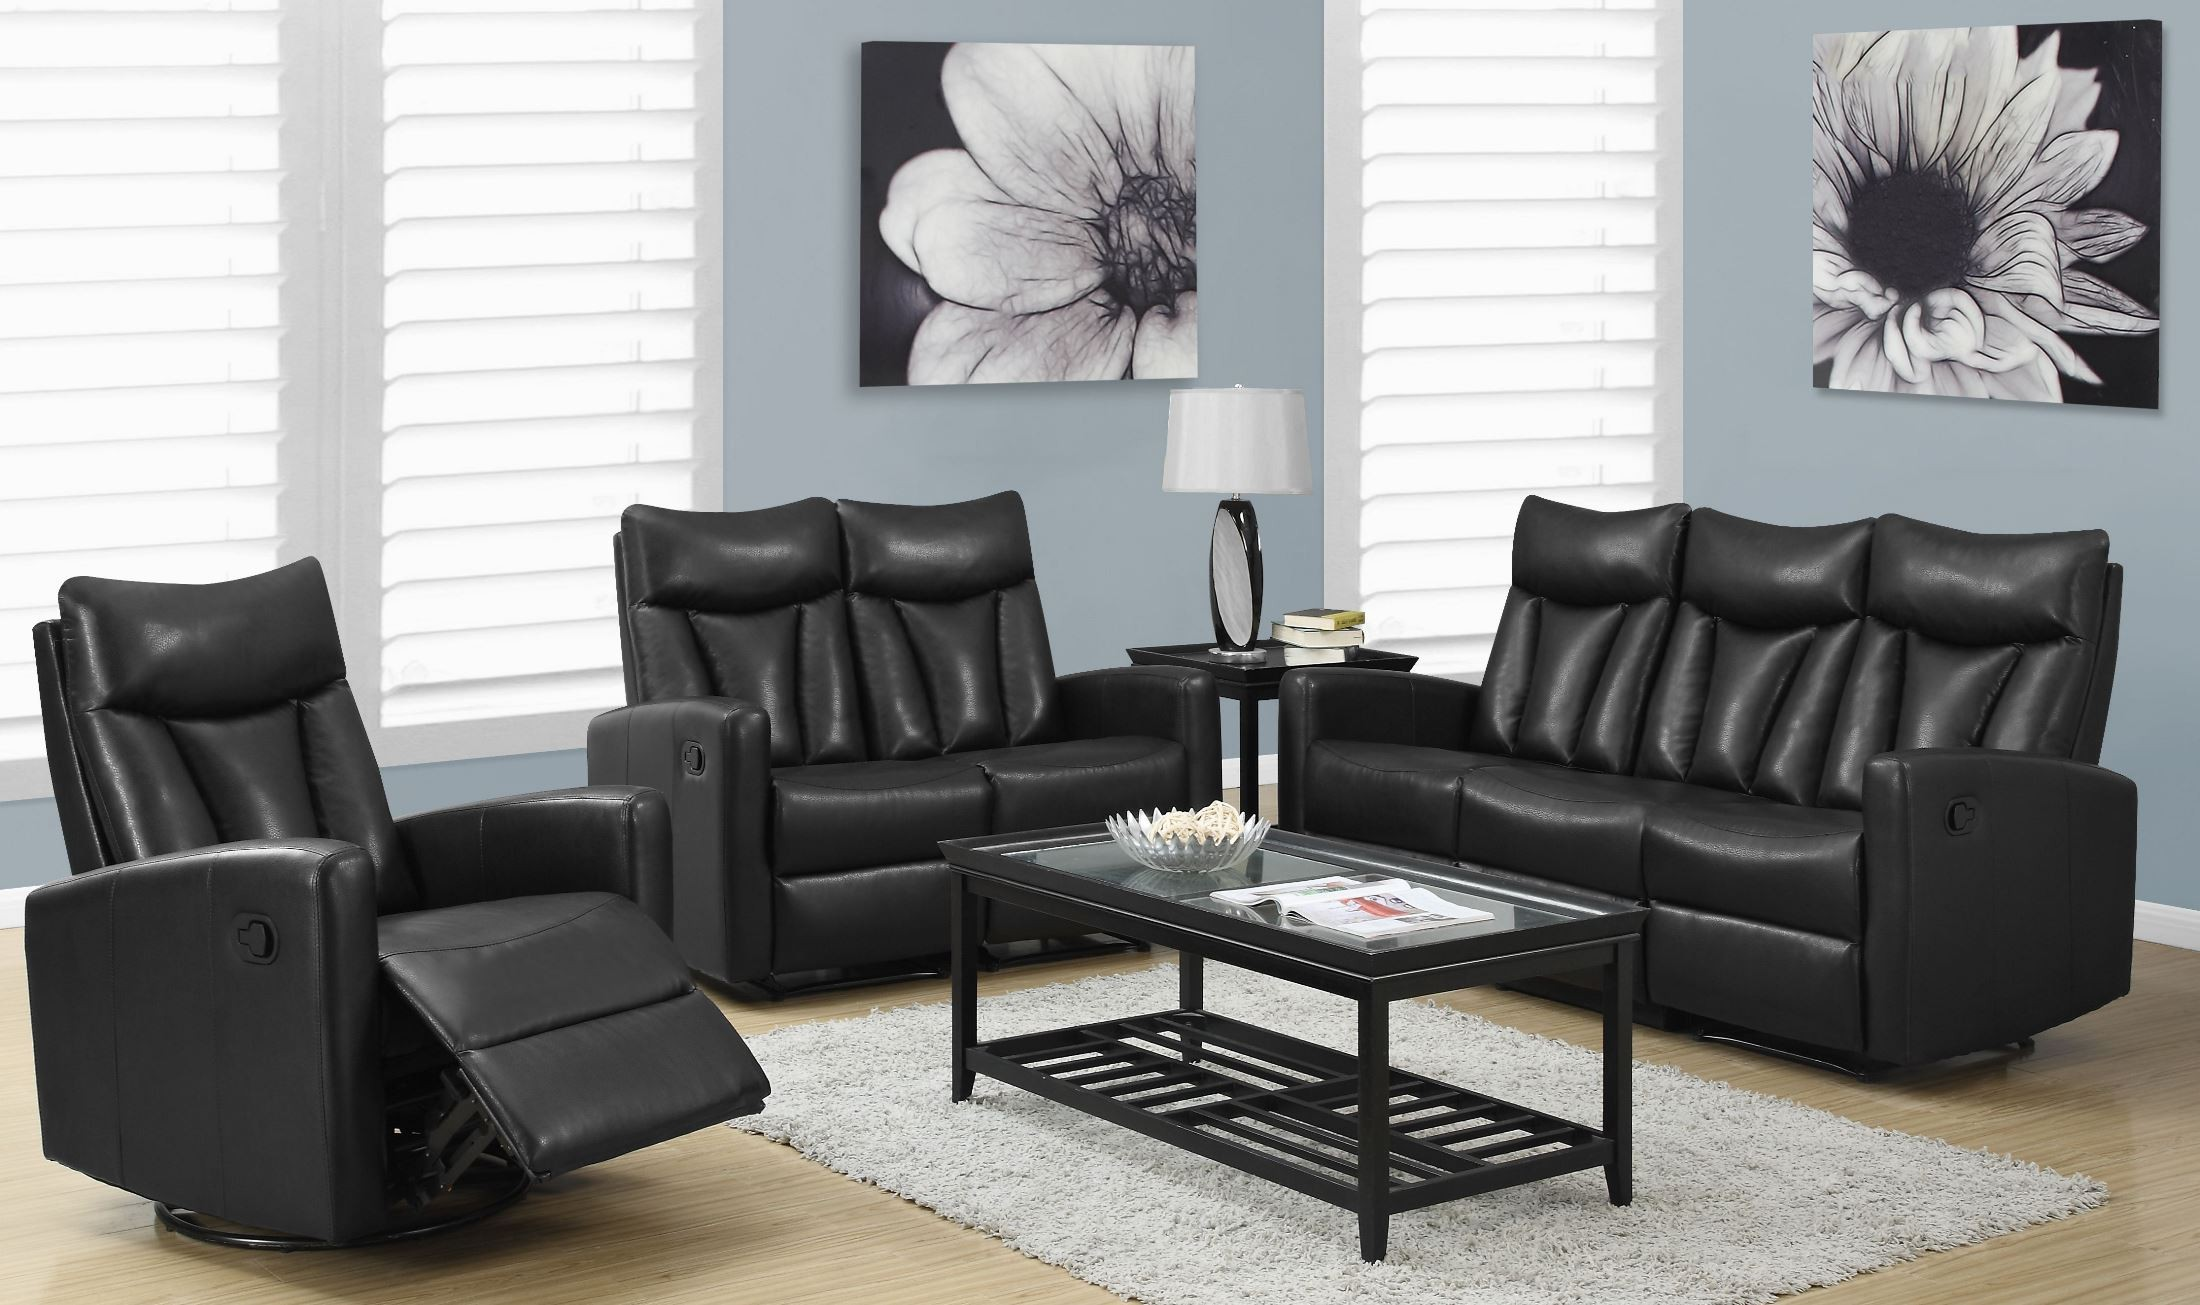 87bk 3 black bonded leather reclining living room set from monarch coleman furniture for Living room with black leather furniture